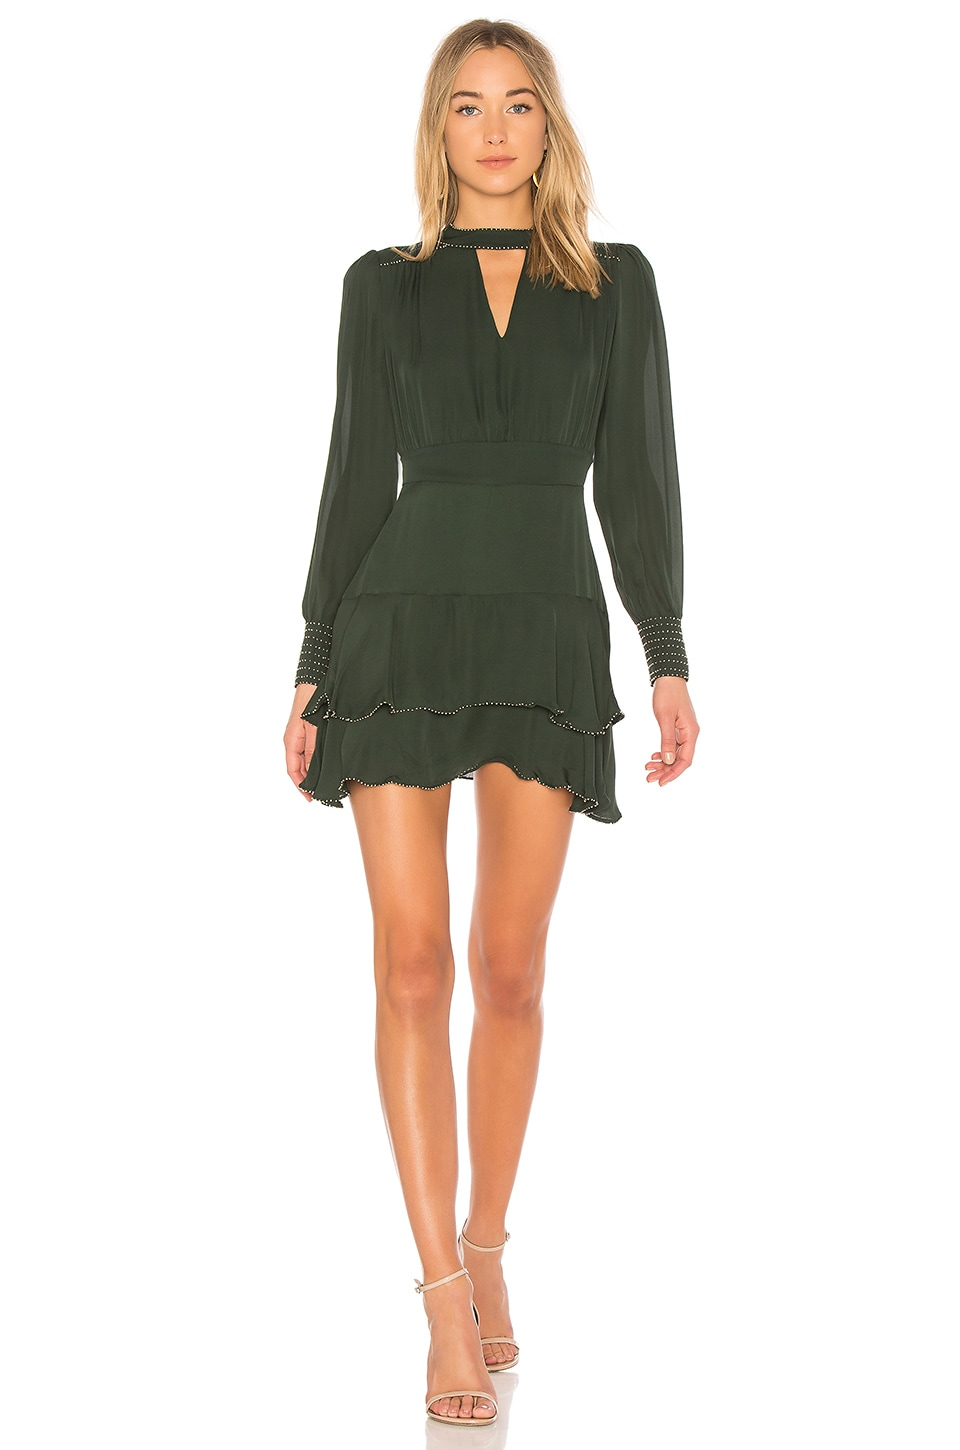 03190ae363d Parker Chrissy Mini Dress in Alphine